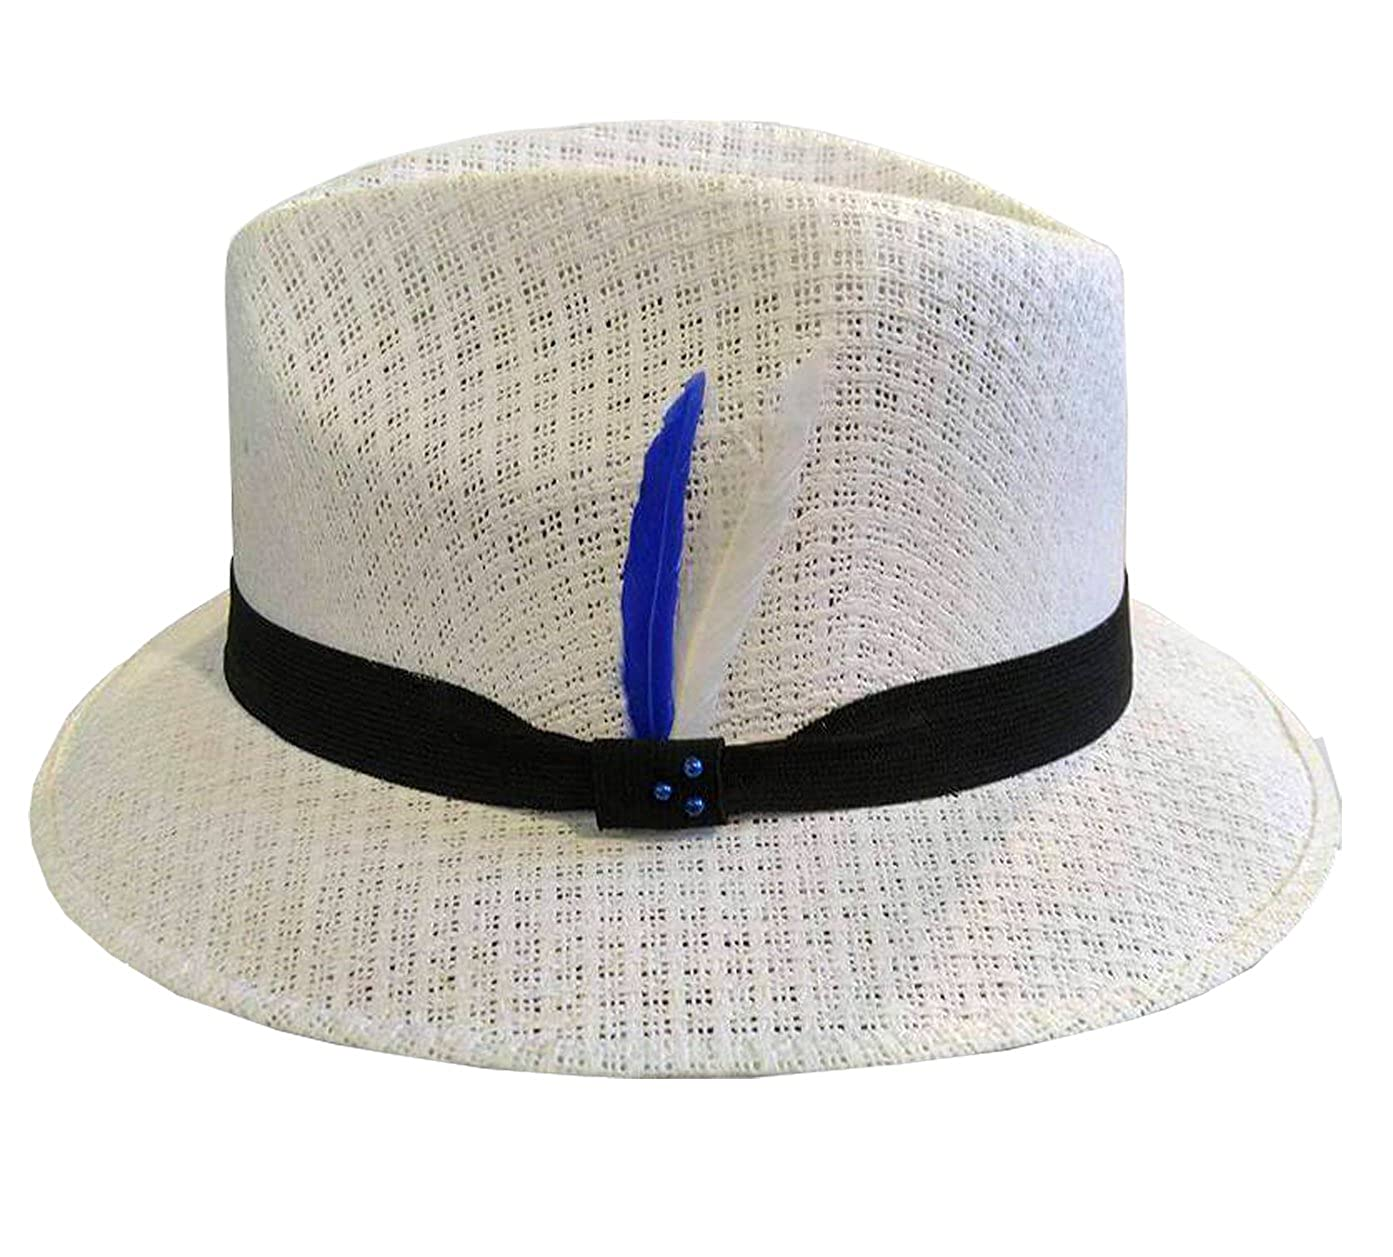 White Pachuco Lowrider Brim Derby Fedora White Straw Hat Blue White Feather  at Amazon Men s Clothing store  198d201c1f2